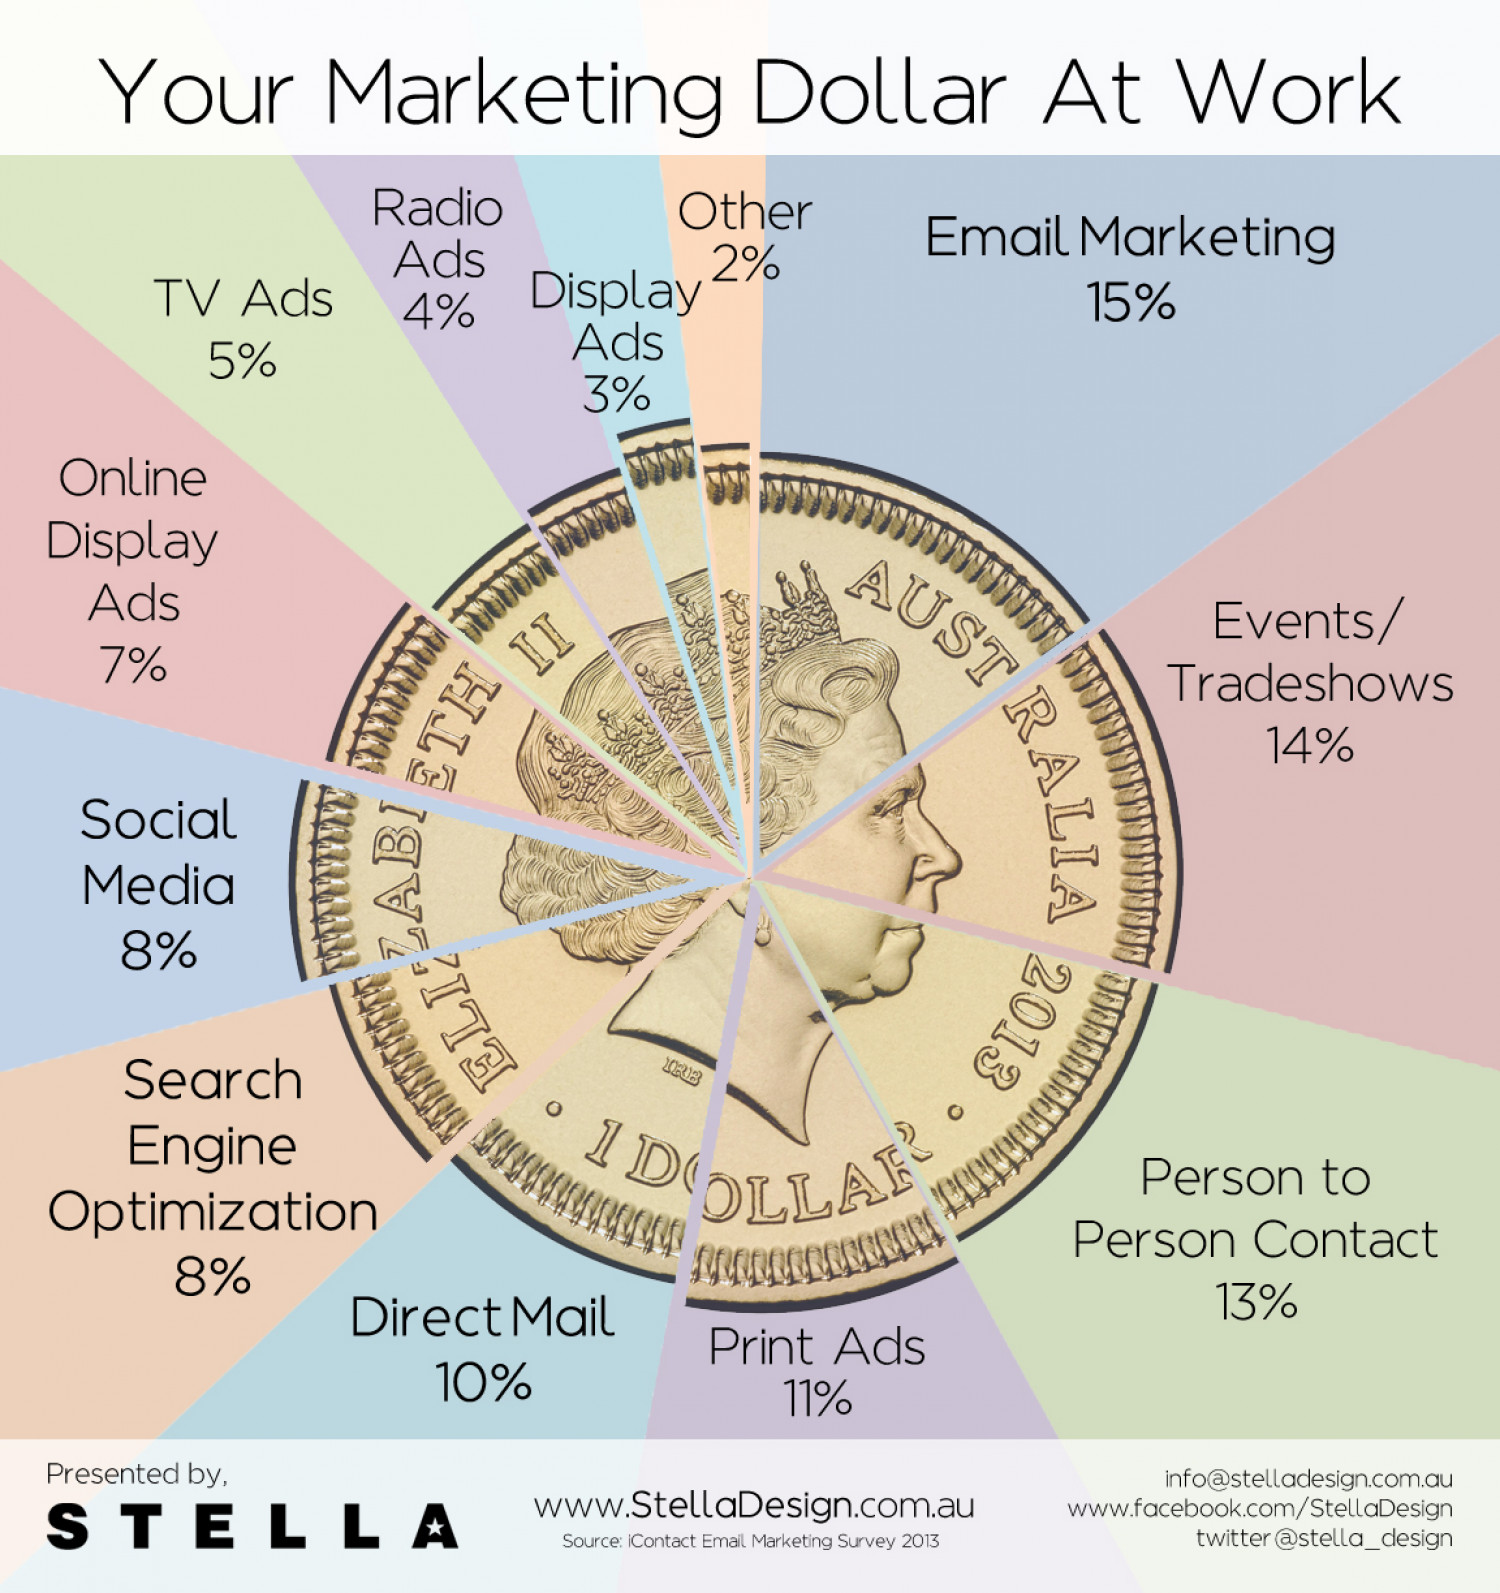 Your Marketing Dollar At Work Infographic